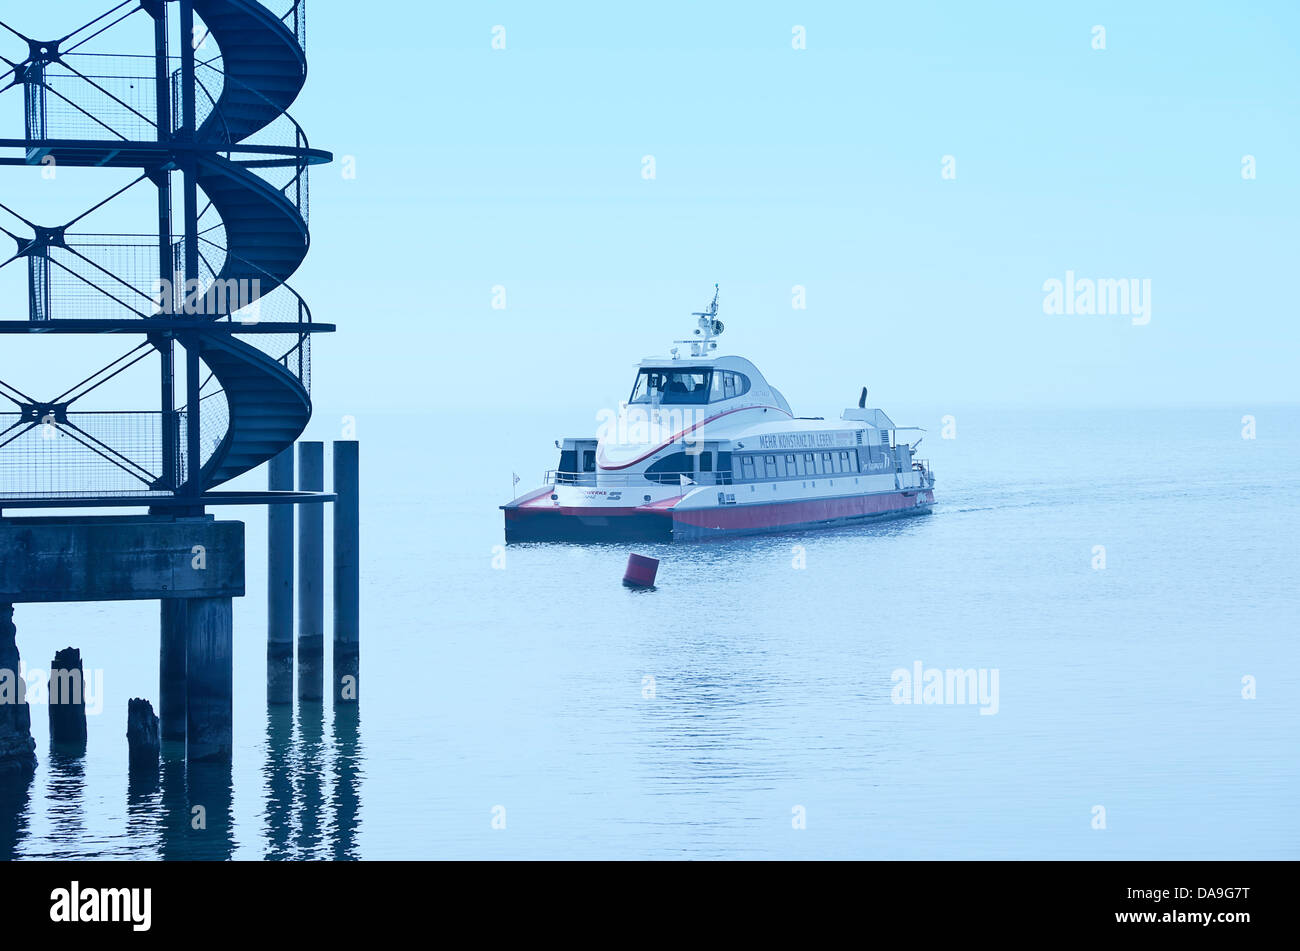 Catamaran Constance comes in, harbour of Friedrichshafen at Lake Constance, Germany. - Stock Image